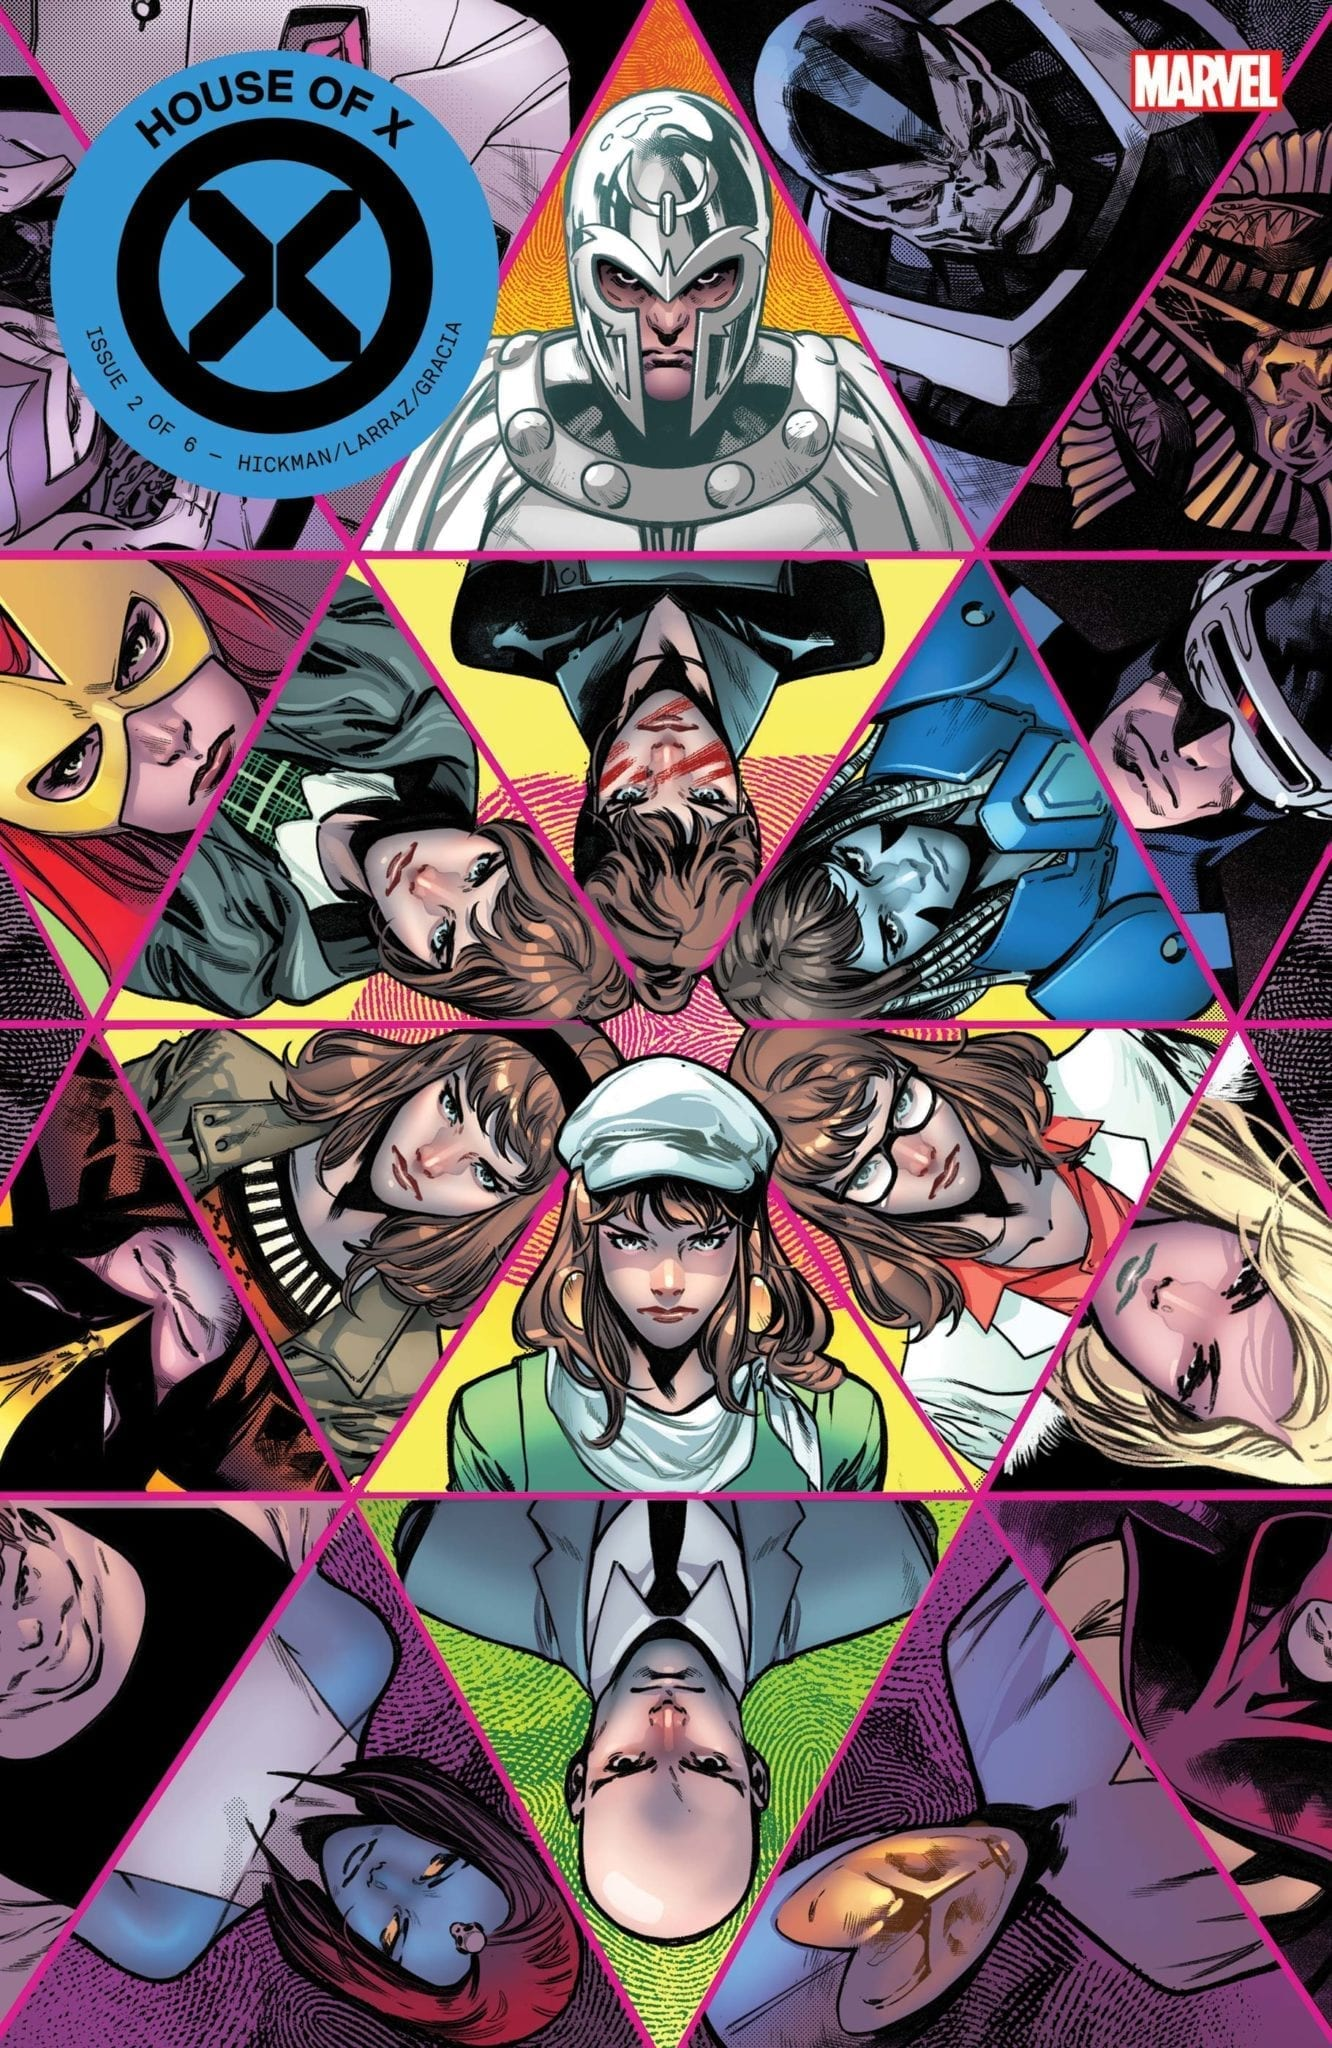 best of 2019 marvel comics house of x #2